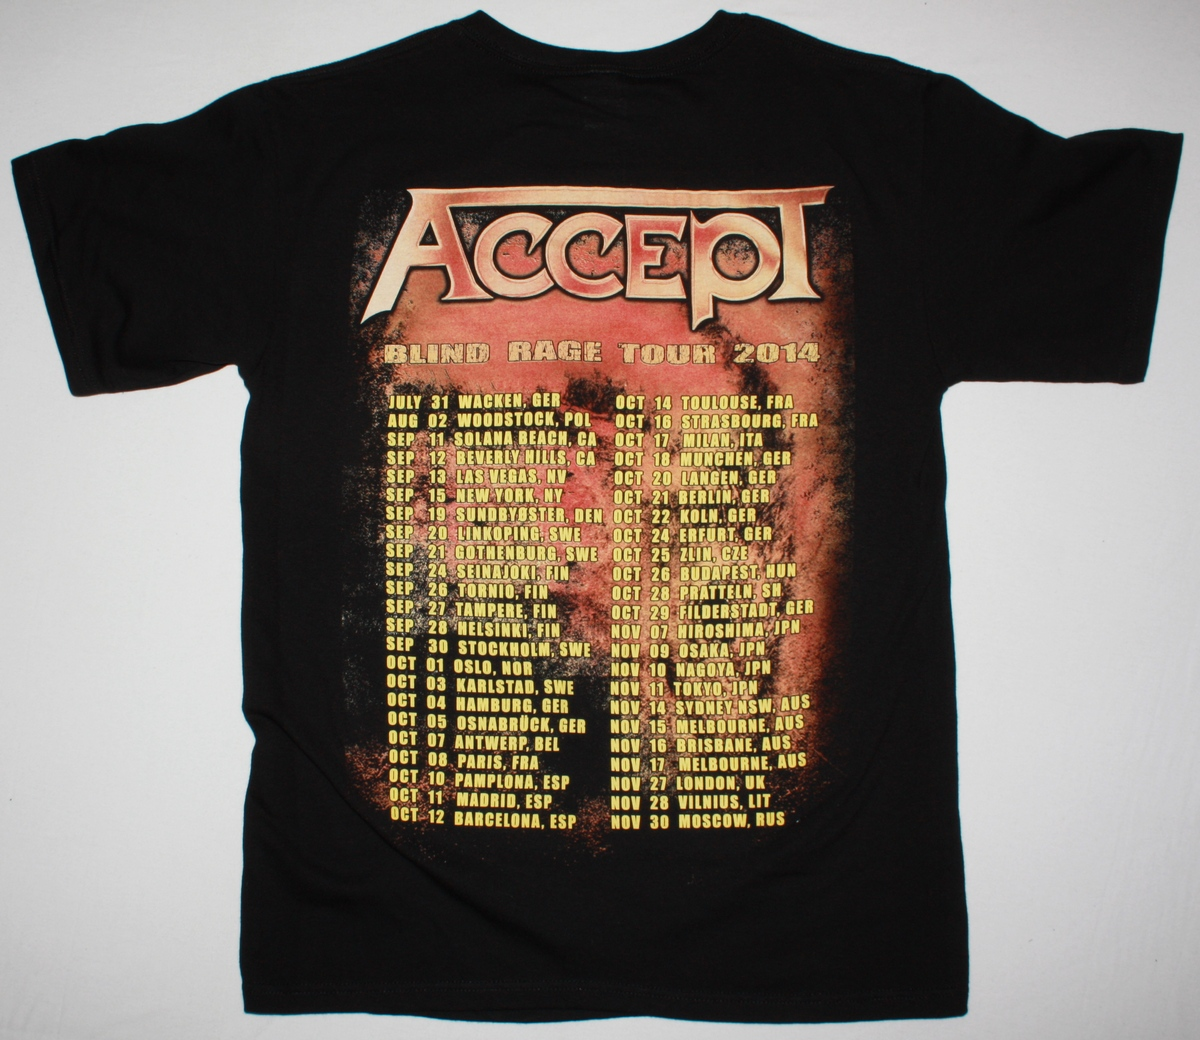 ACCEPT BLIND RAGE WORLD TOUR DATES 2014 NEW BLACK T-SHIRT